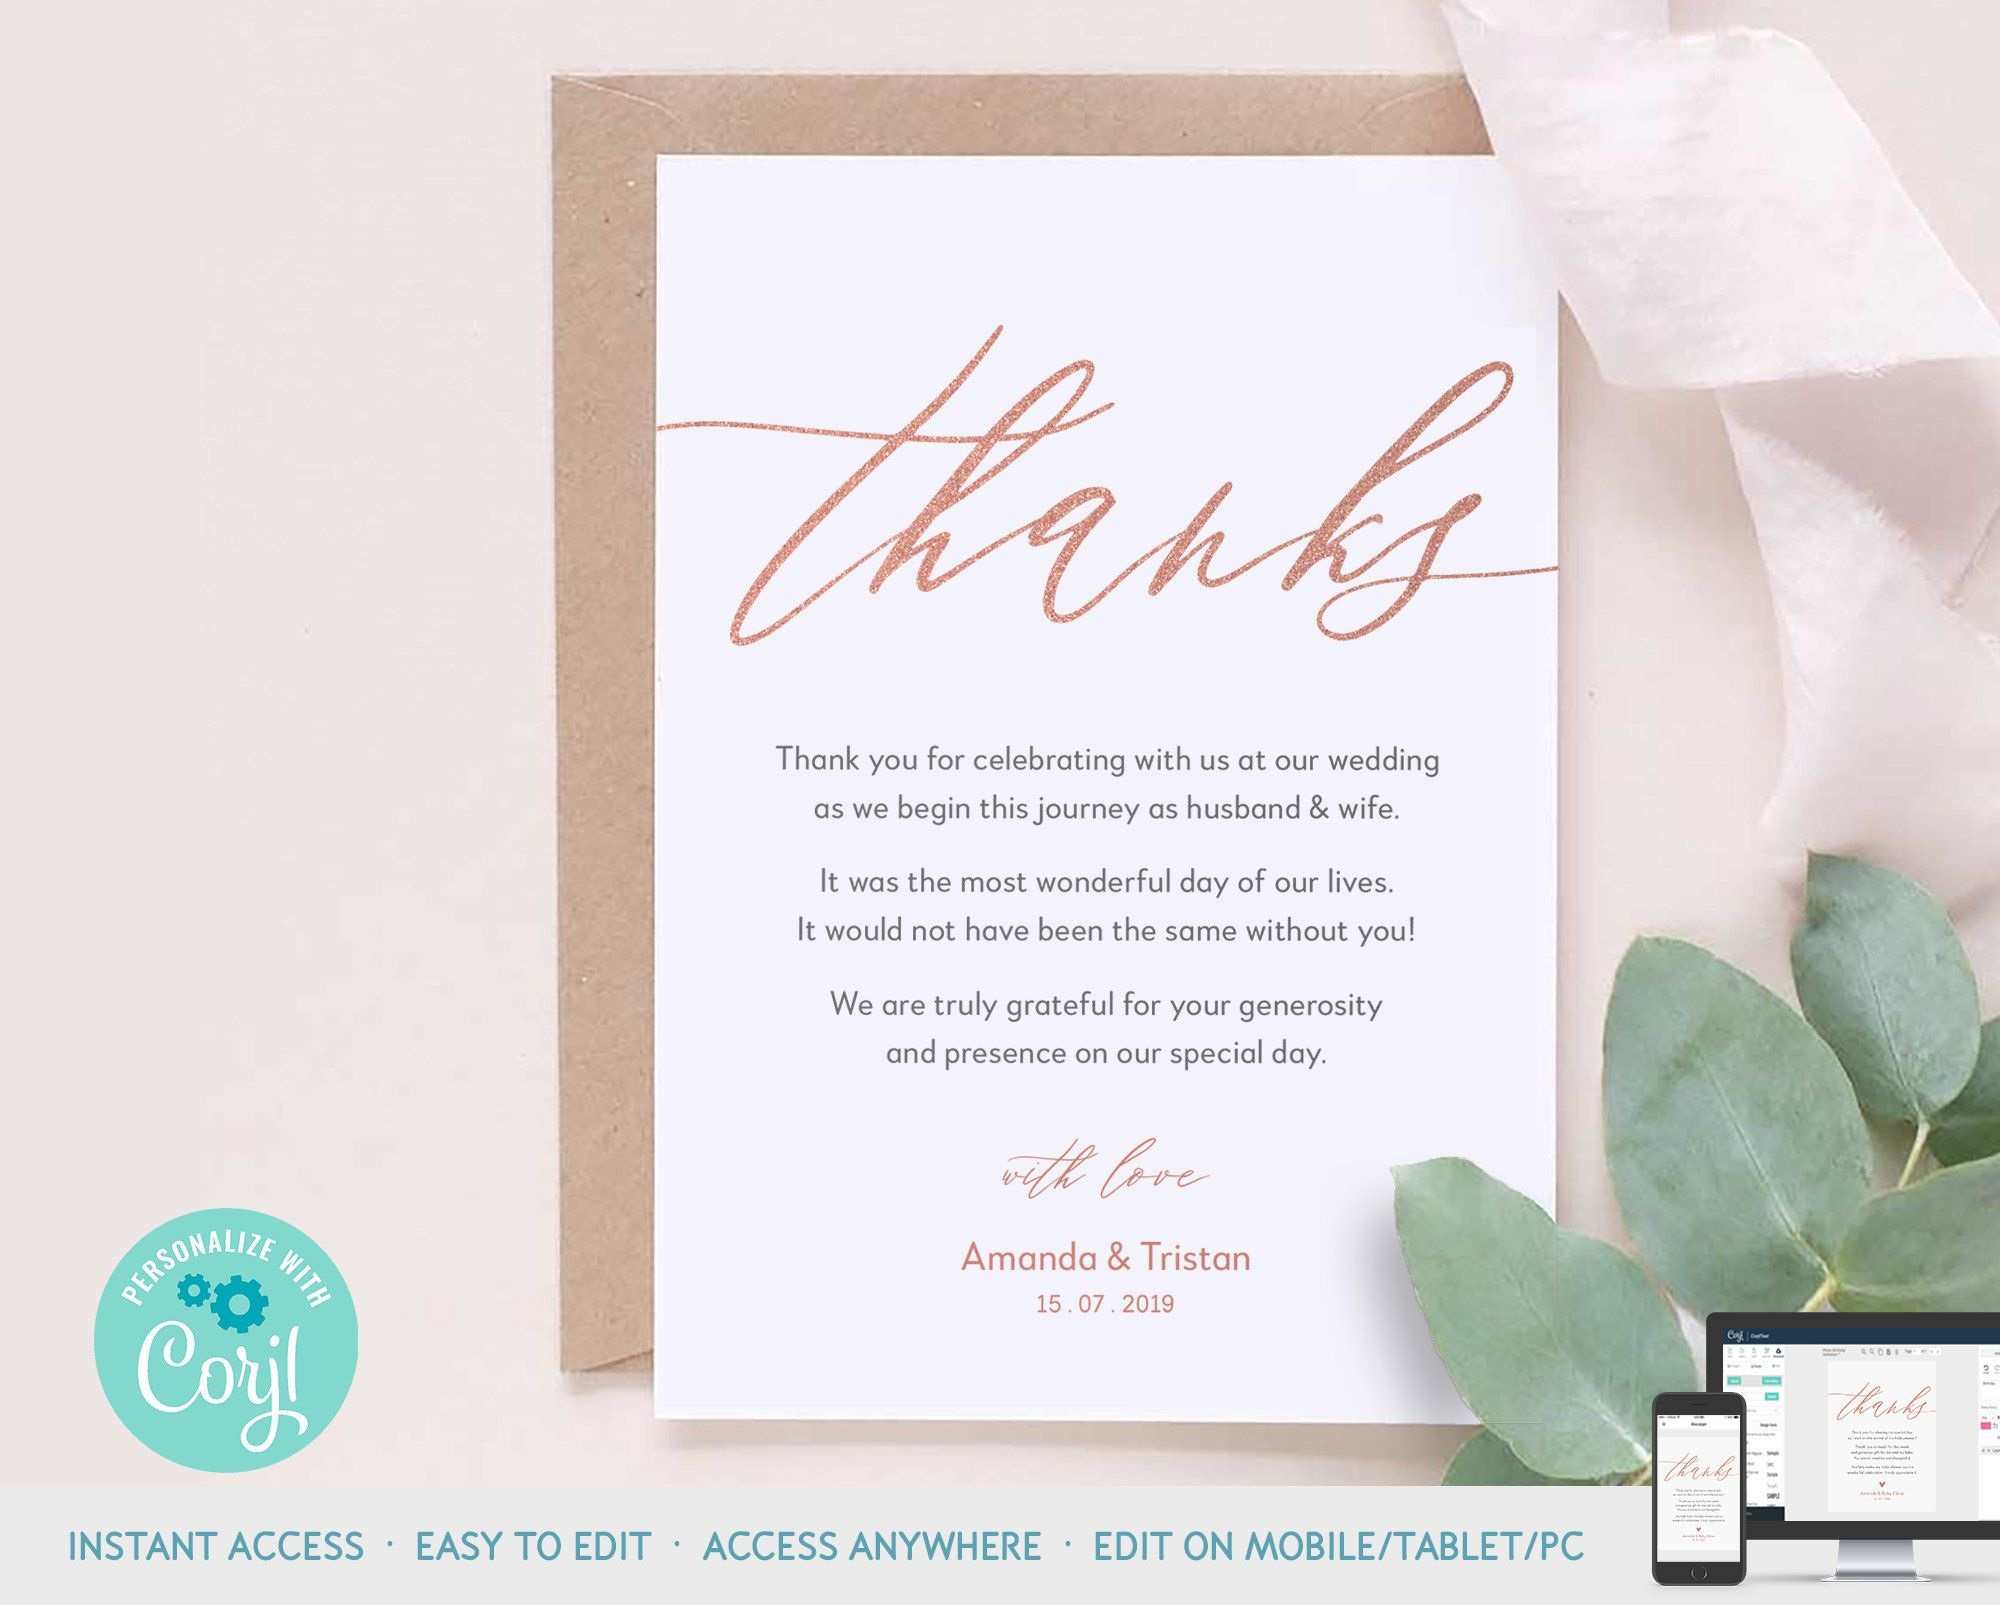 003 Best Bridal Shower Card Template Picture  Invitation Free Download BingoFull